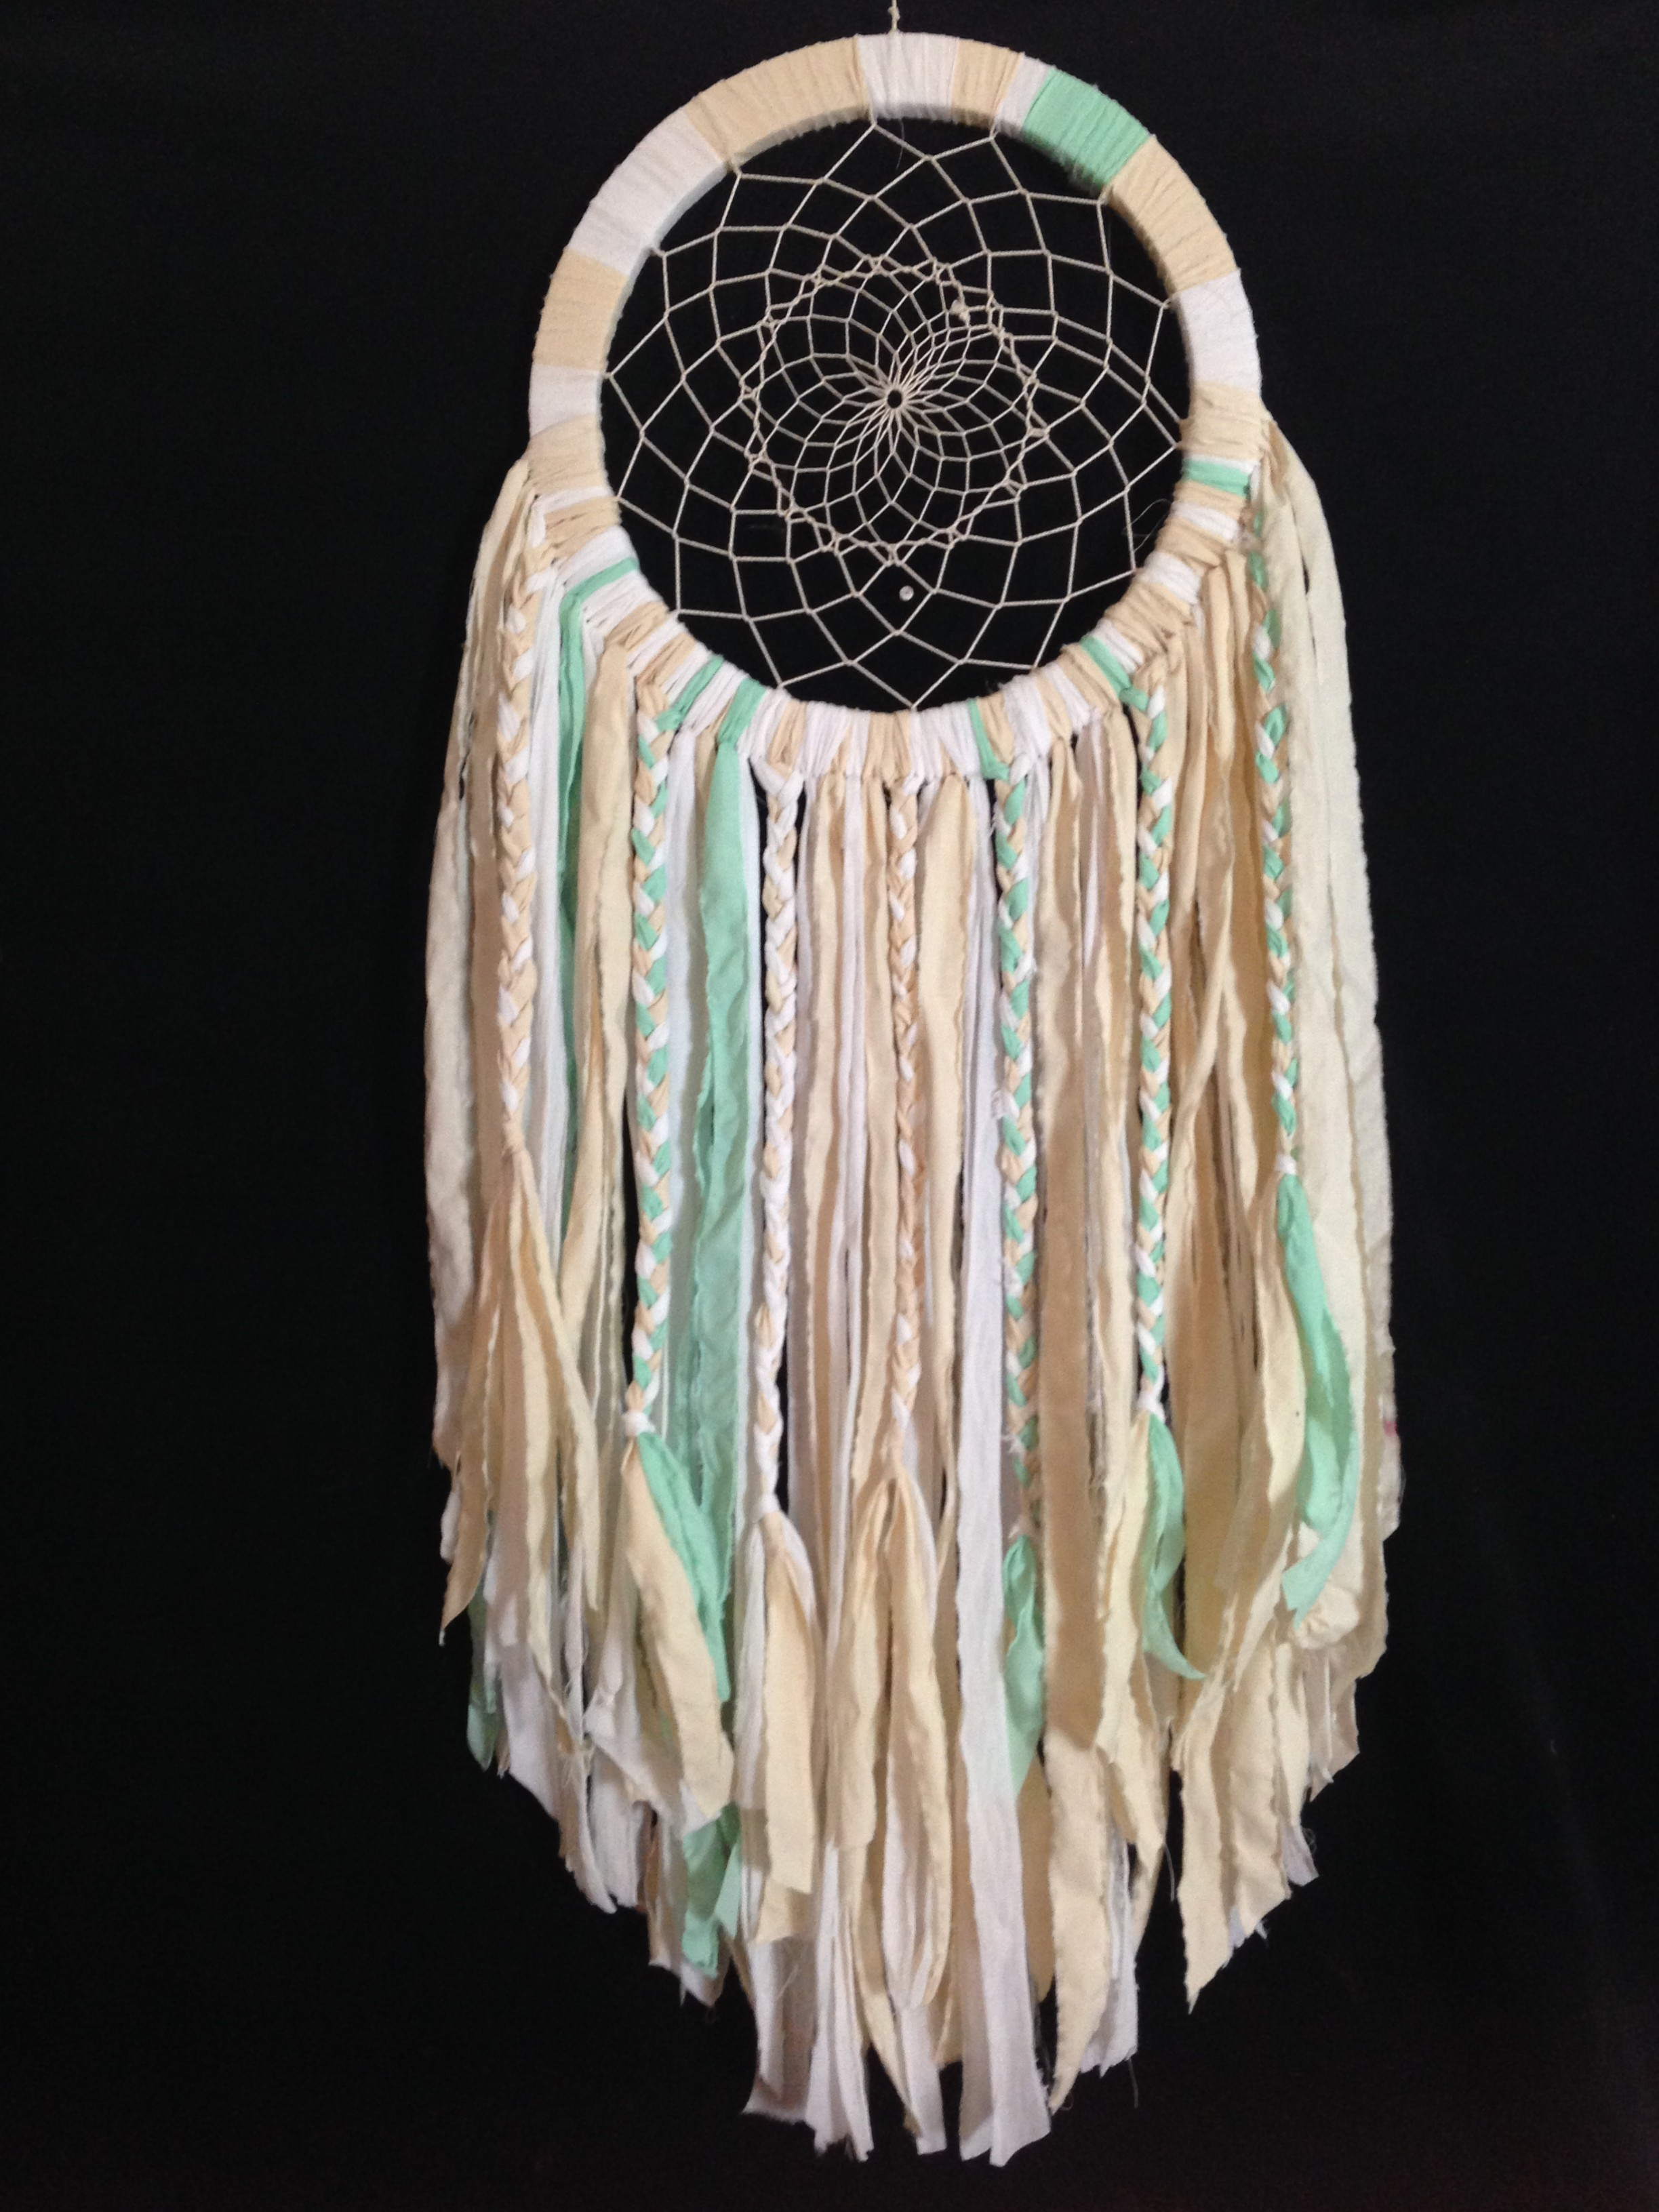 Biggest Dream Catcher The Most Gorgeous Dream Catchers We've Ever Seen GirlieGirl Army 24